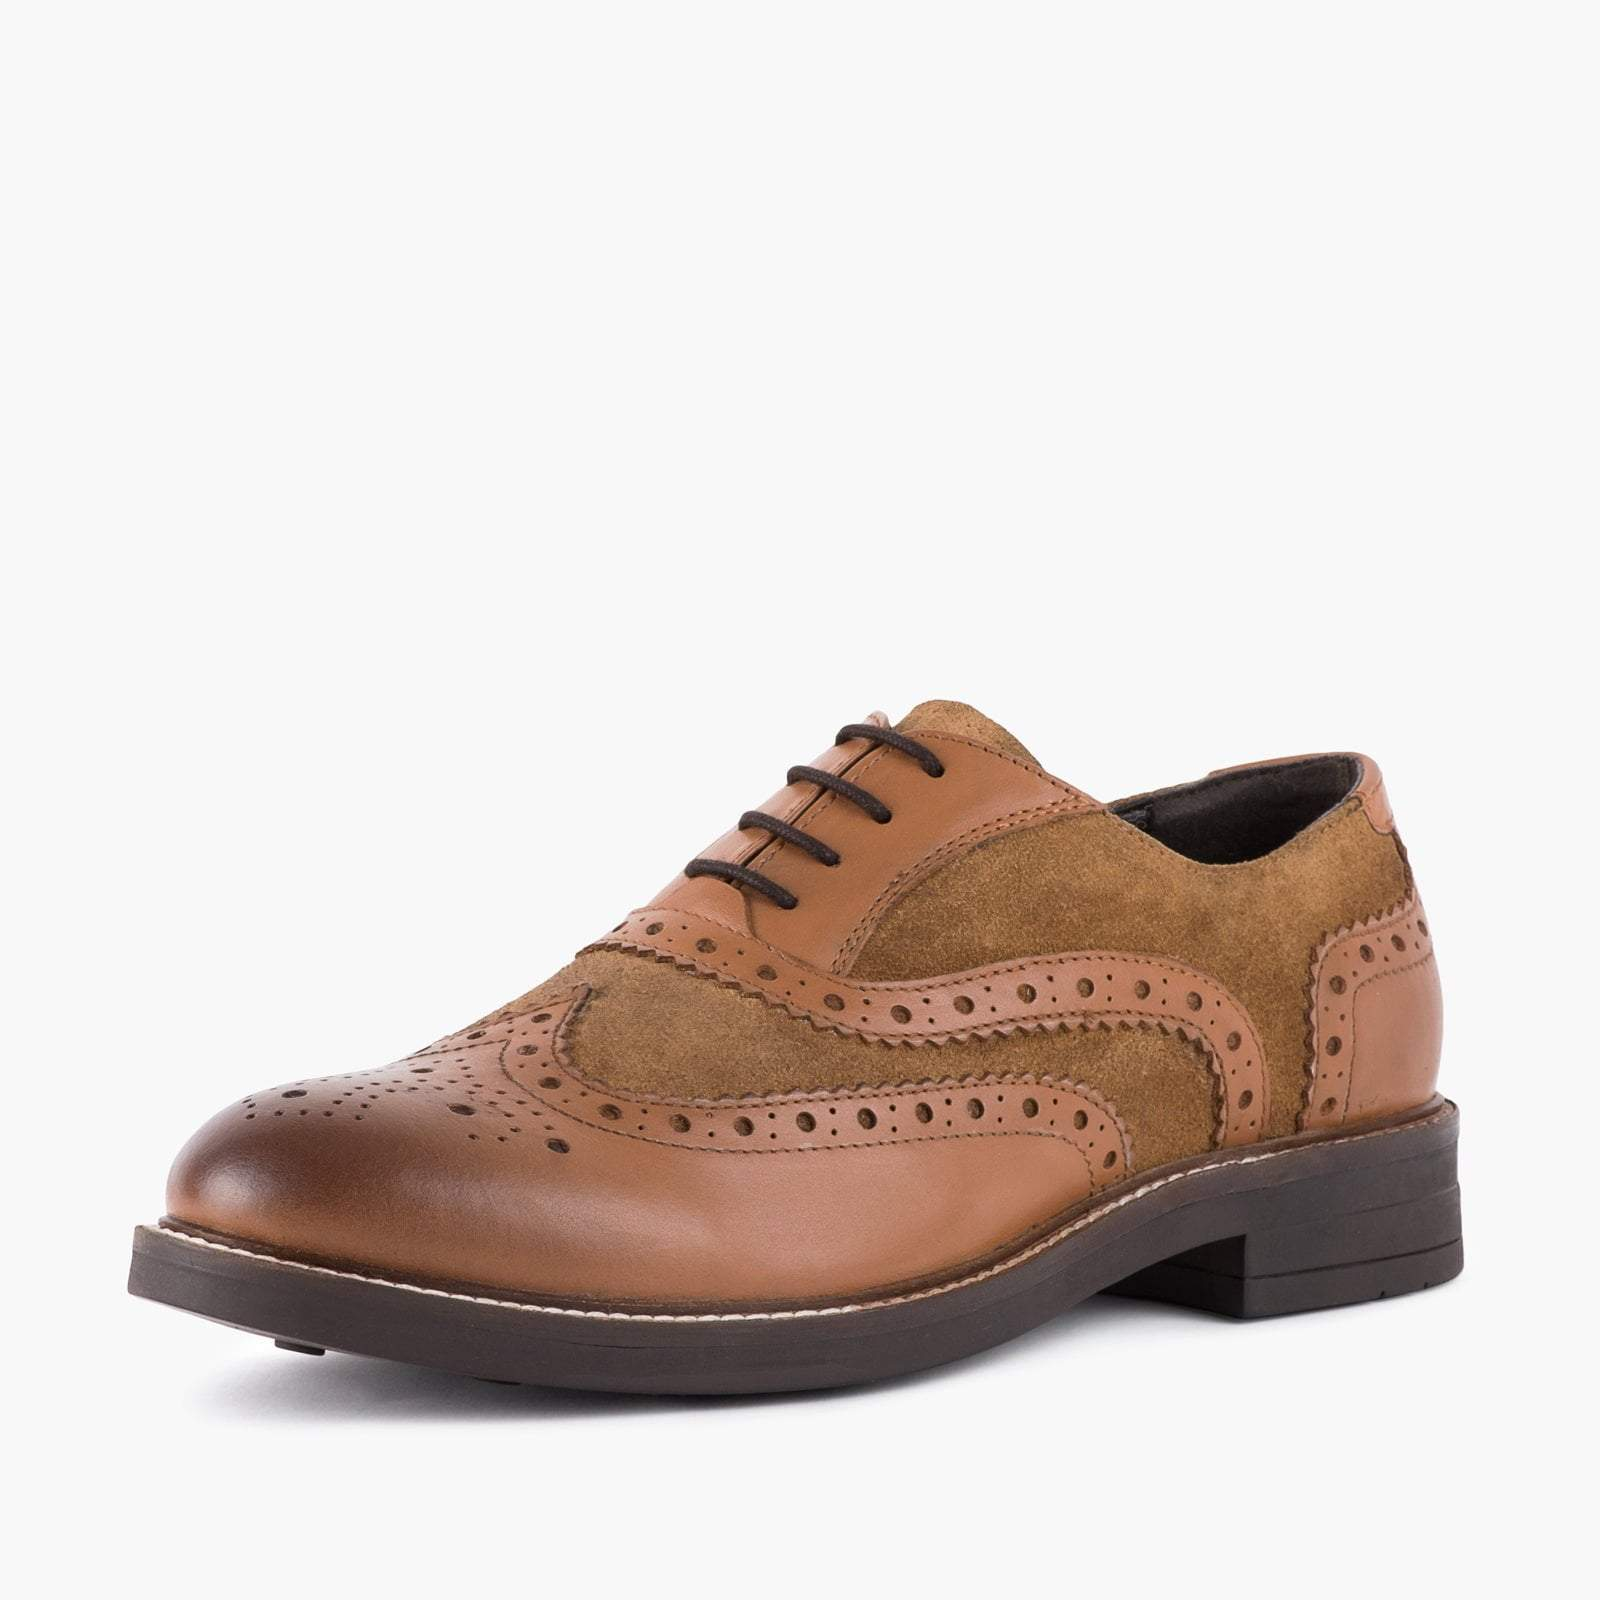 Redfoot Footwear UK 6 / EURO 39 / US 7 / Tan / Leather FLOYD TAN